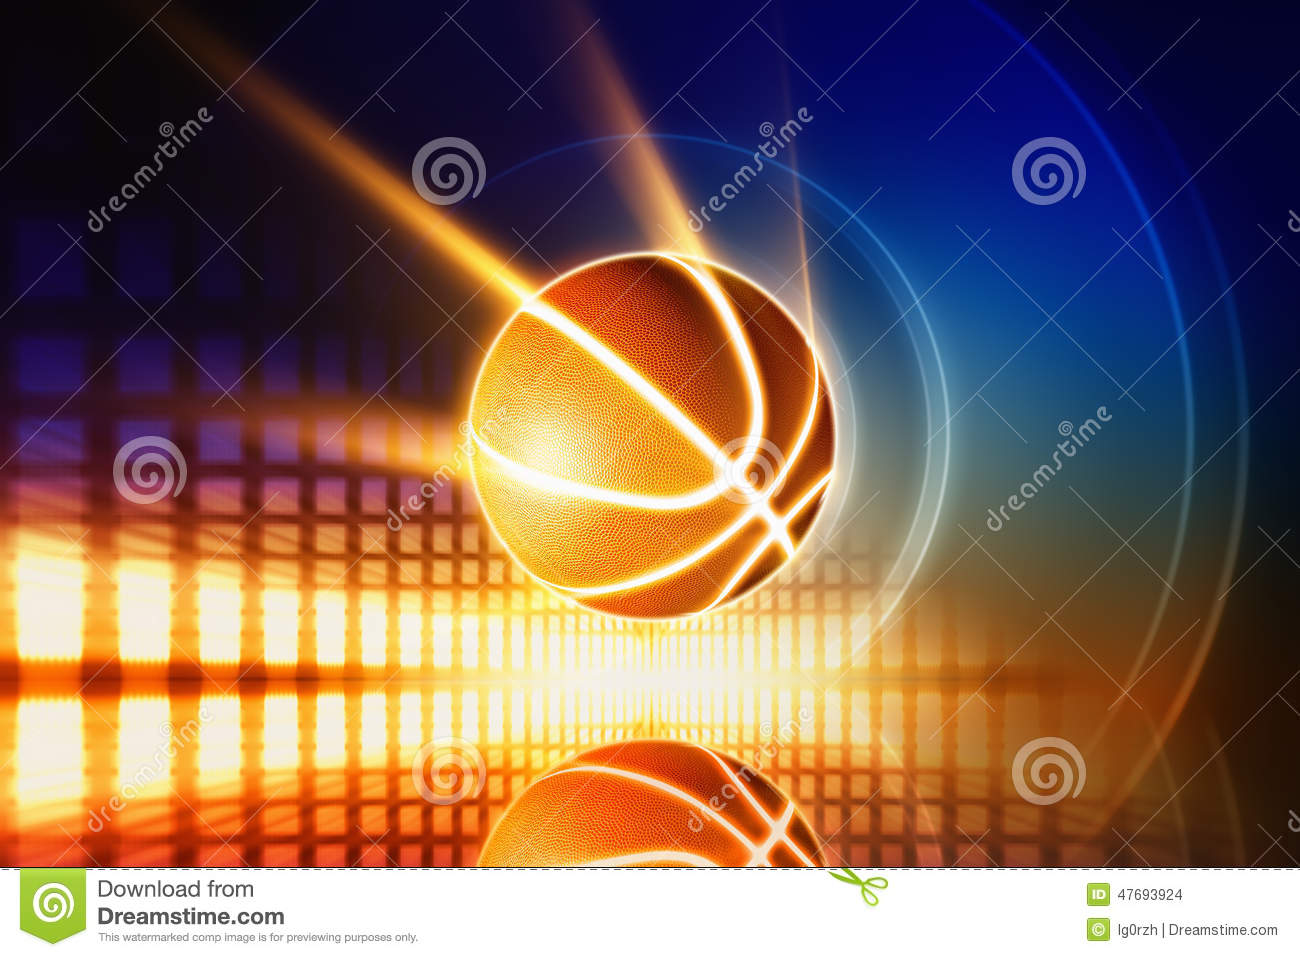 Background Abstract Volleyball Blue Yellow Ball Frame: Glowing Basketball Stock Photo. Image Of Orange, Yellow